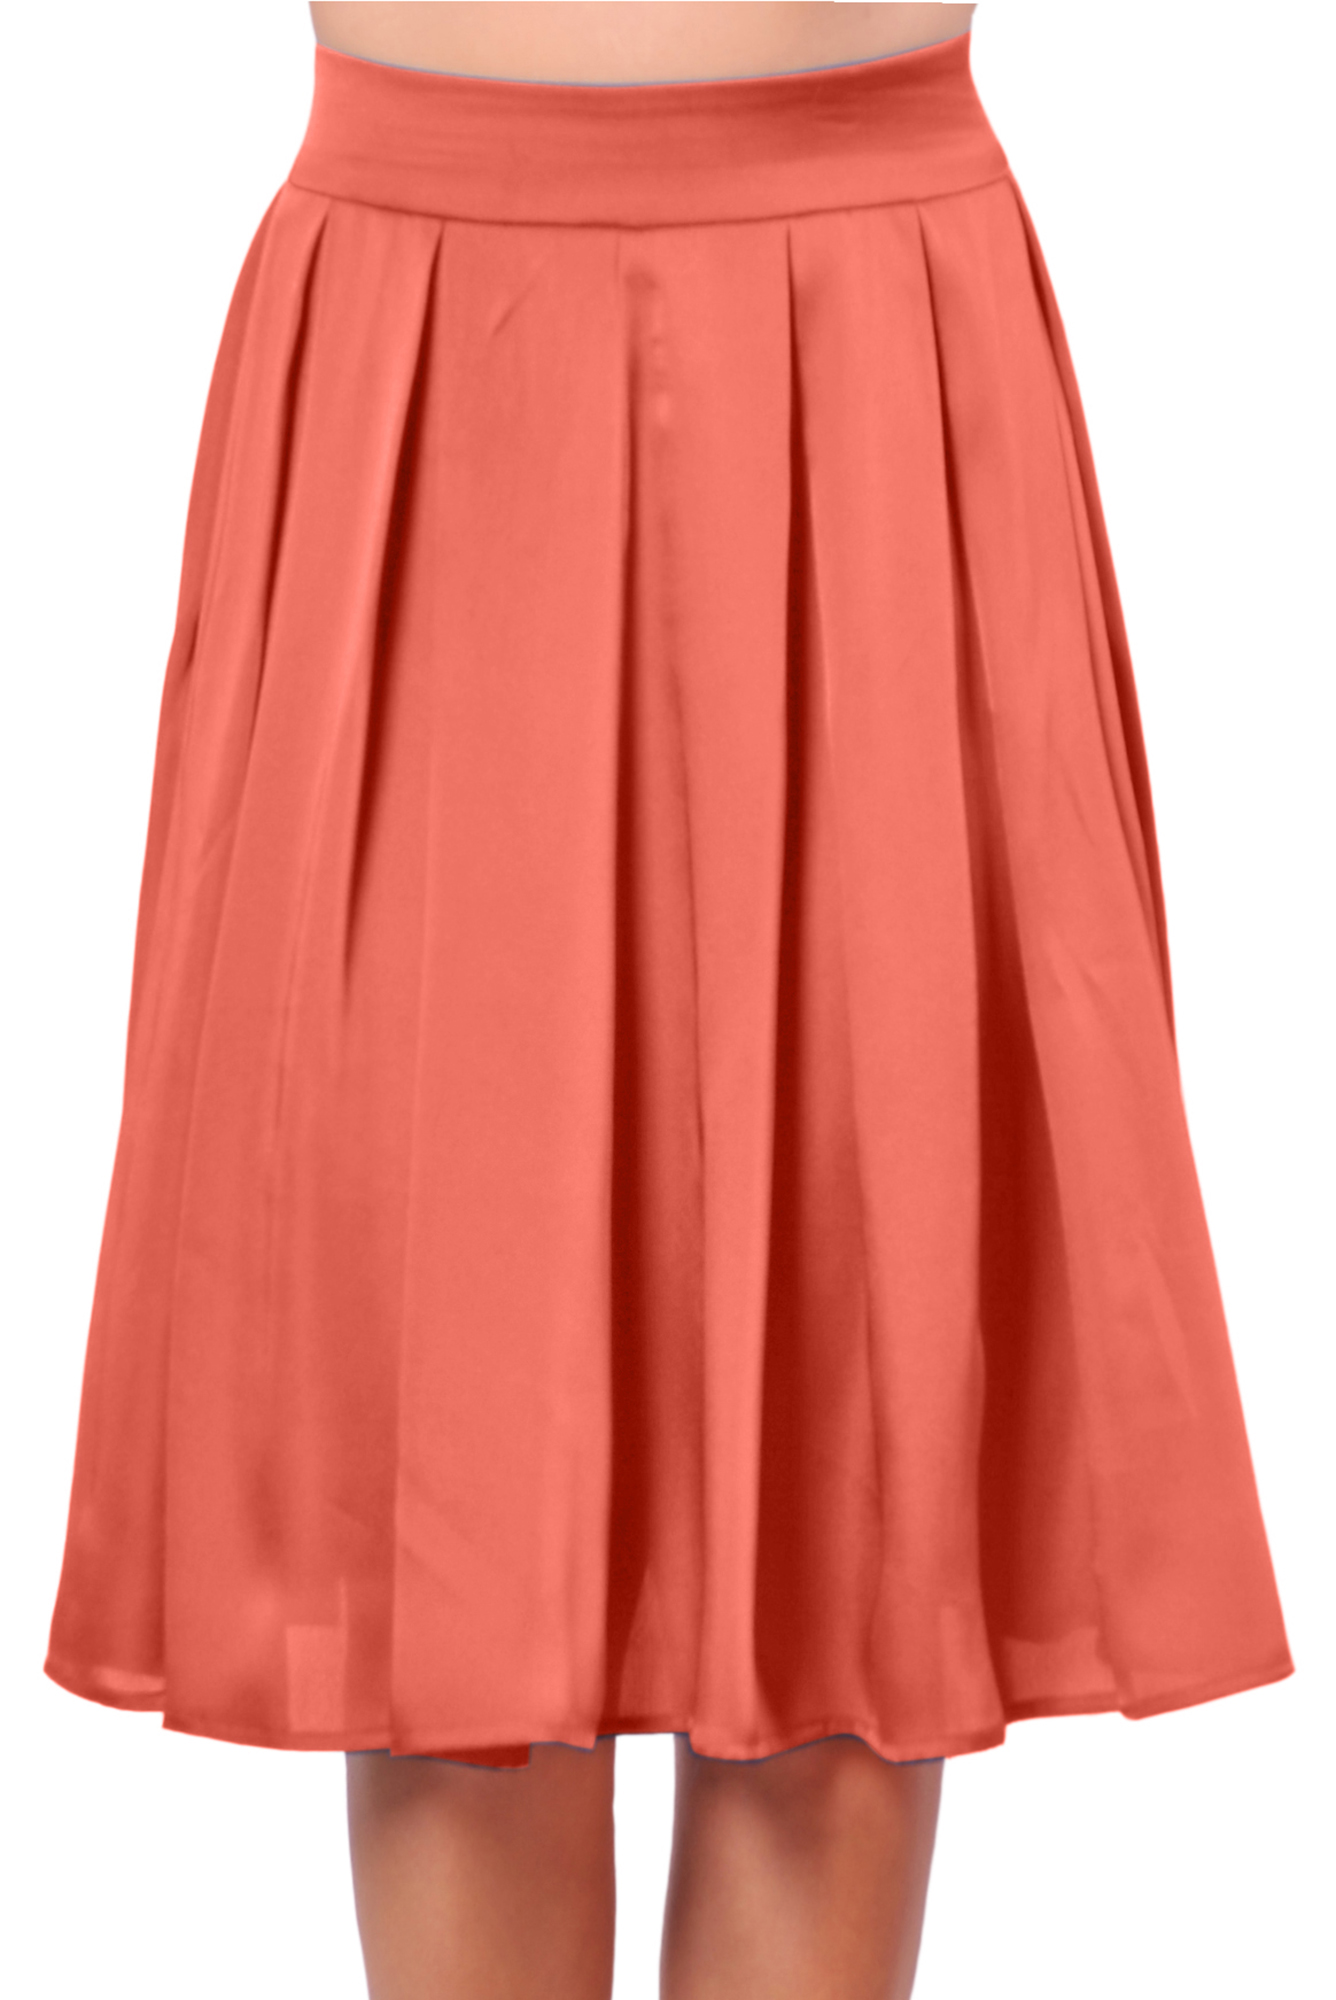 marycrafts womens office casual skirt pleated knee length